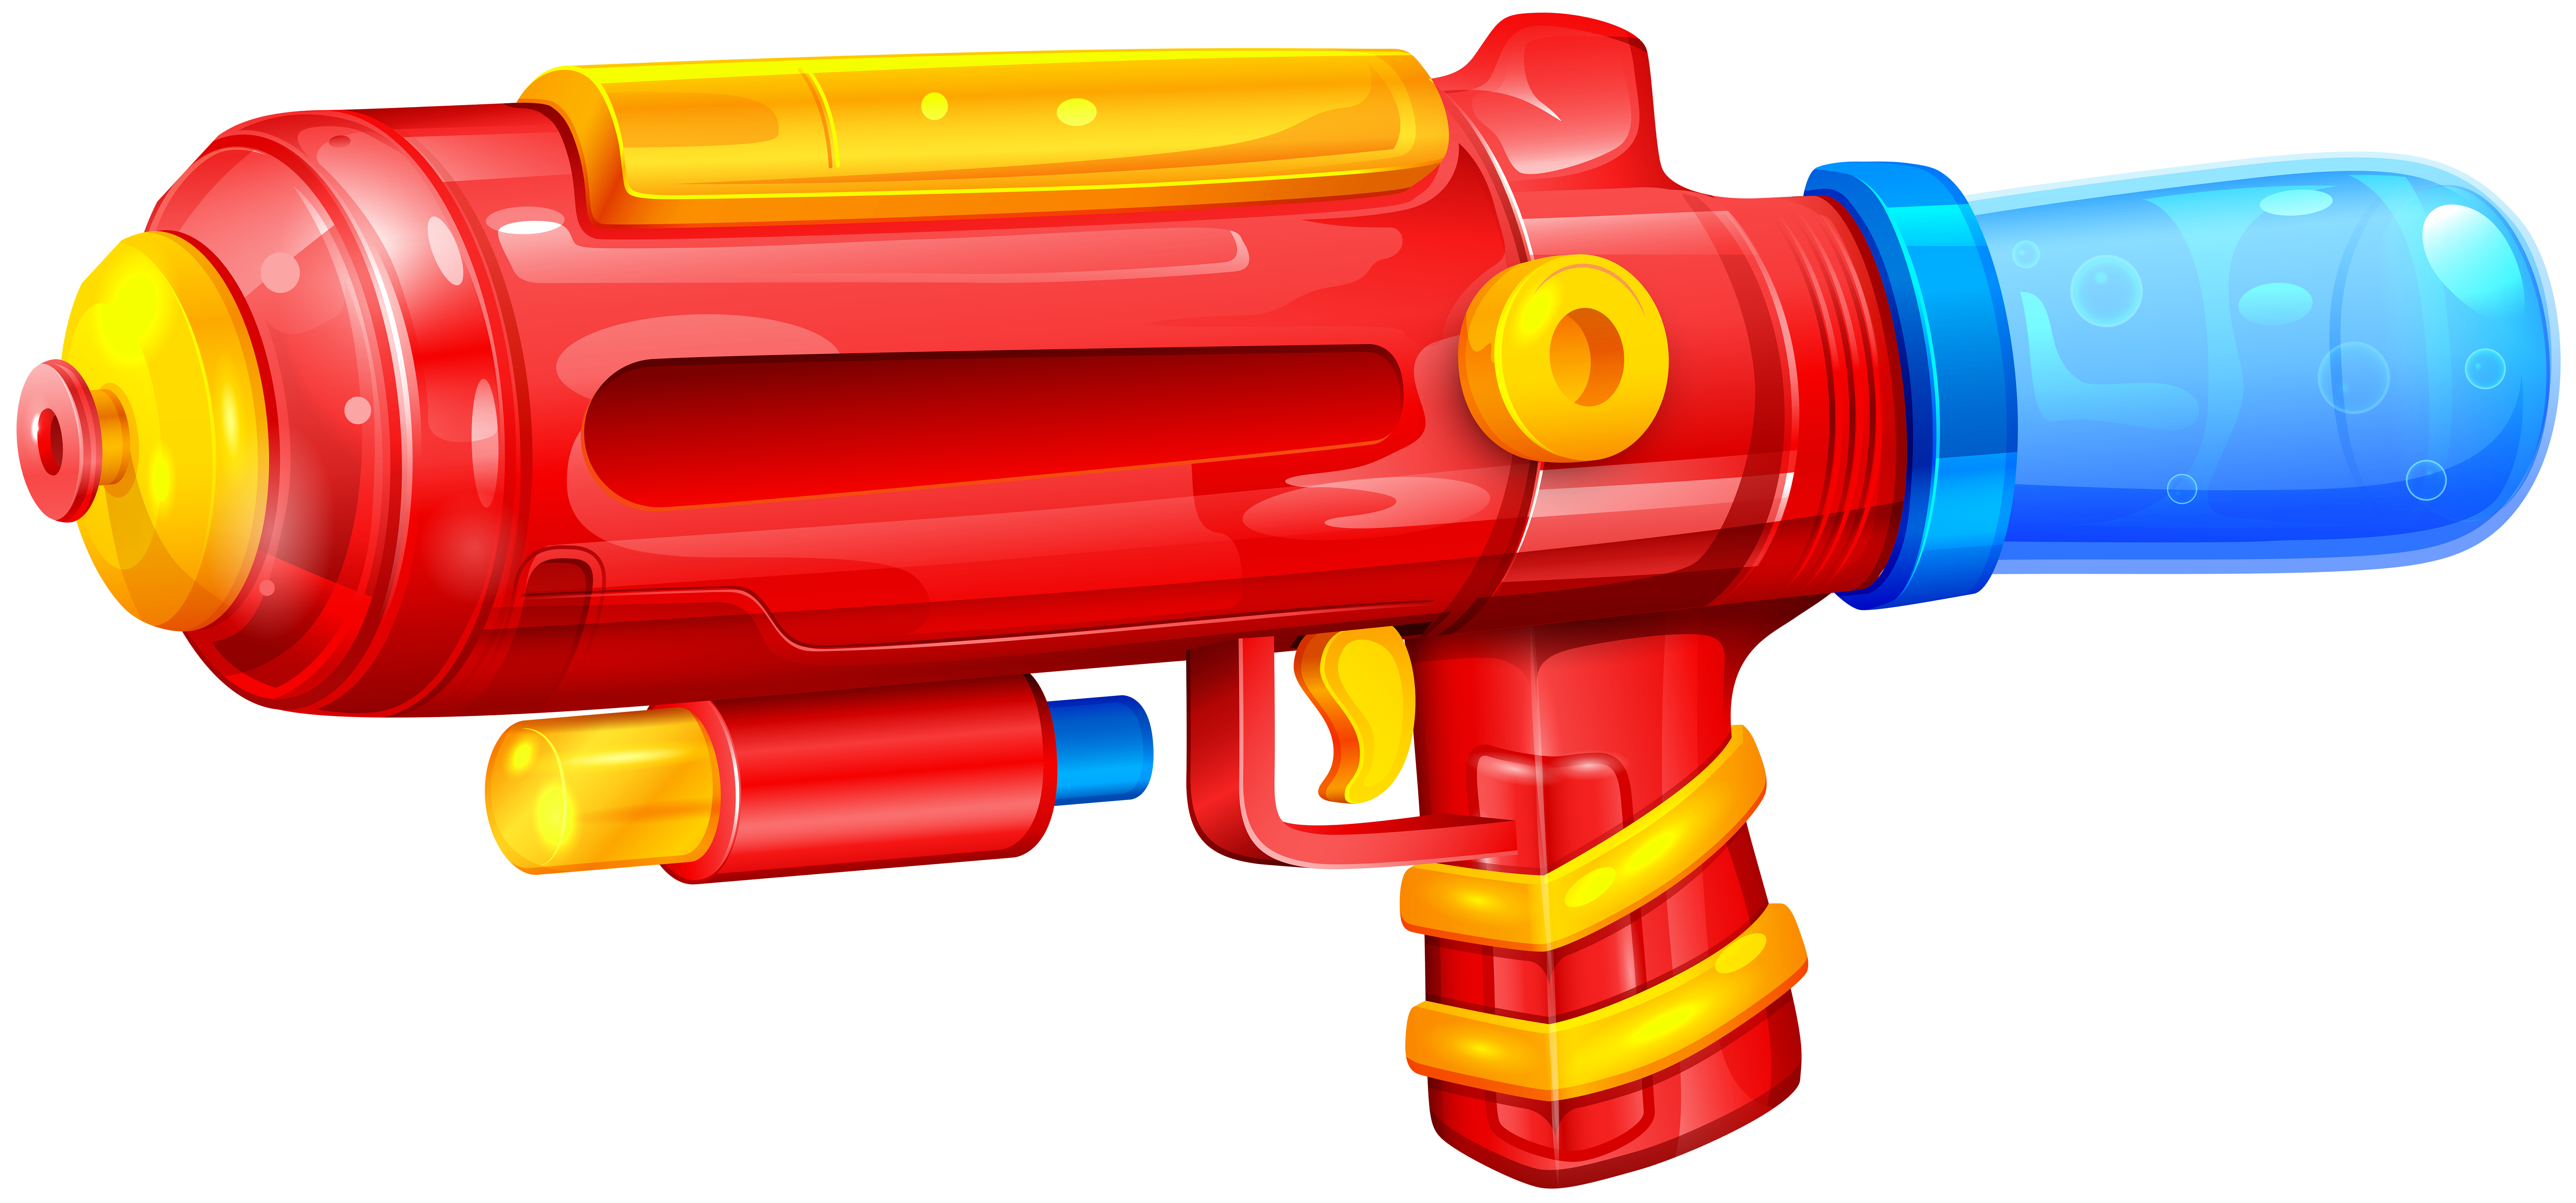 Water at getdrawings com. Clipart gun boy